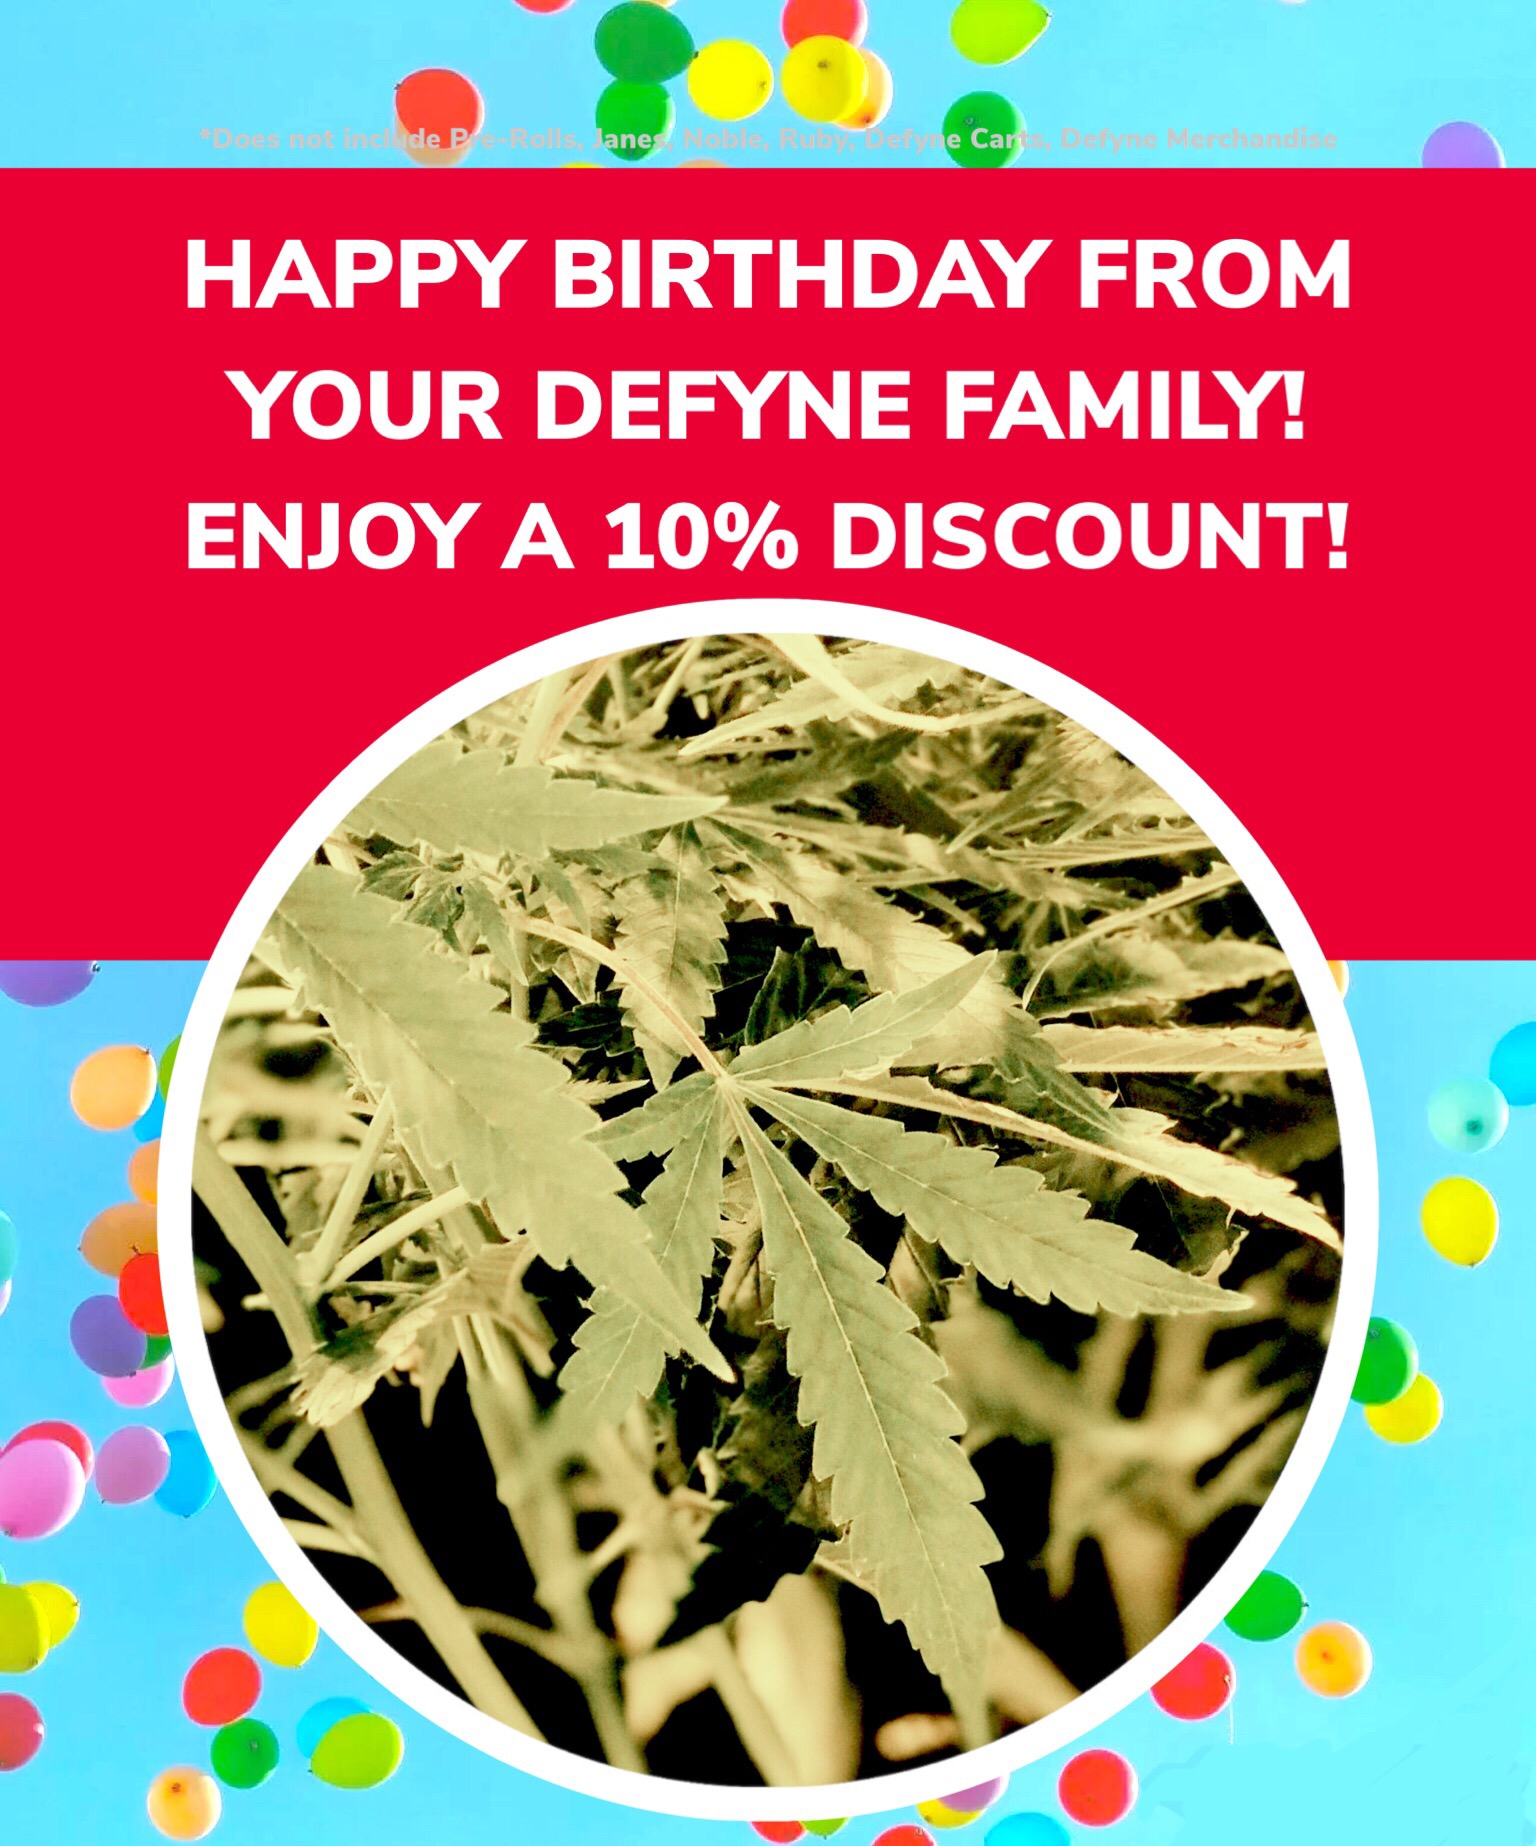 Come and see us on YOUR BIRTHDAY and receive 15% off! -